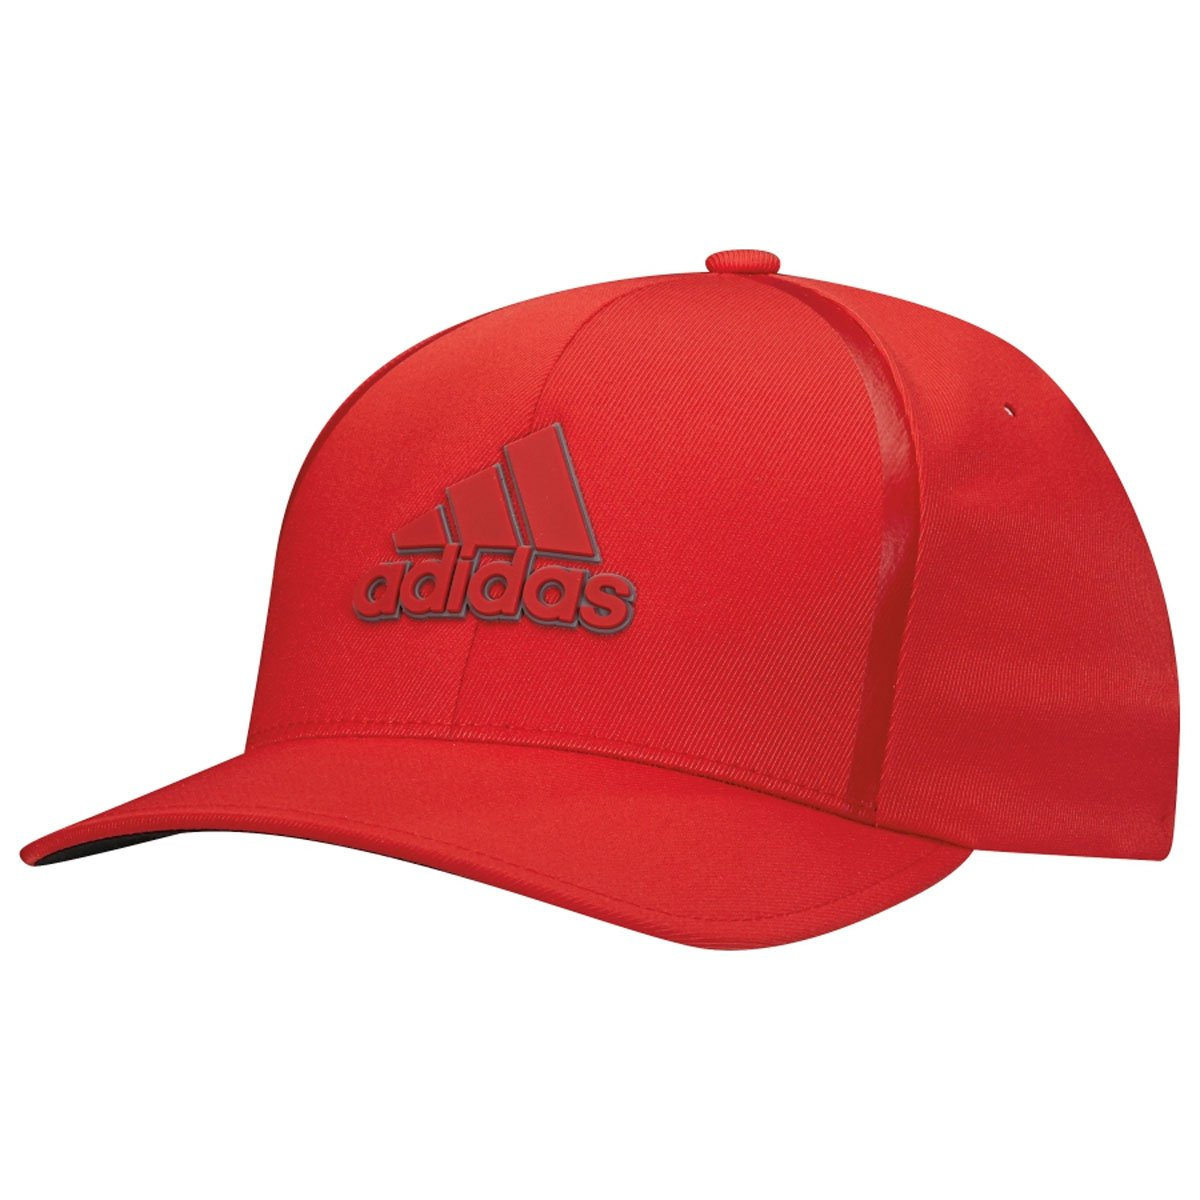 0cd3591d11f adidas Tour Delta Texture Cap - Red at Amazon Women s Clothing store